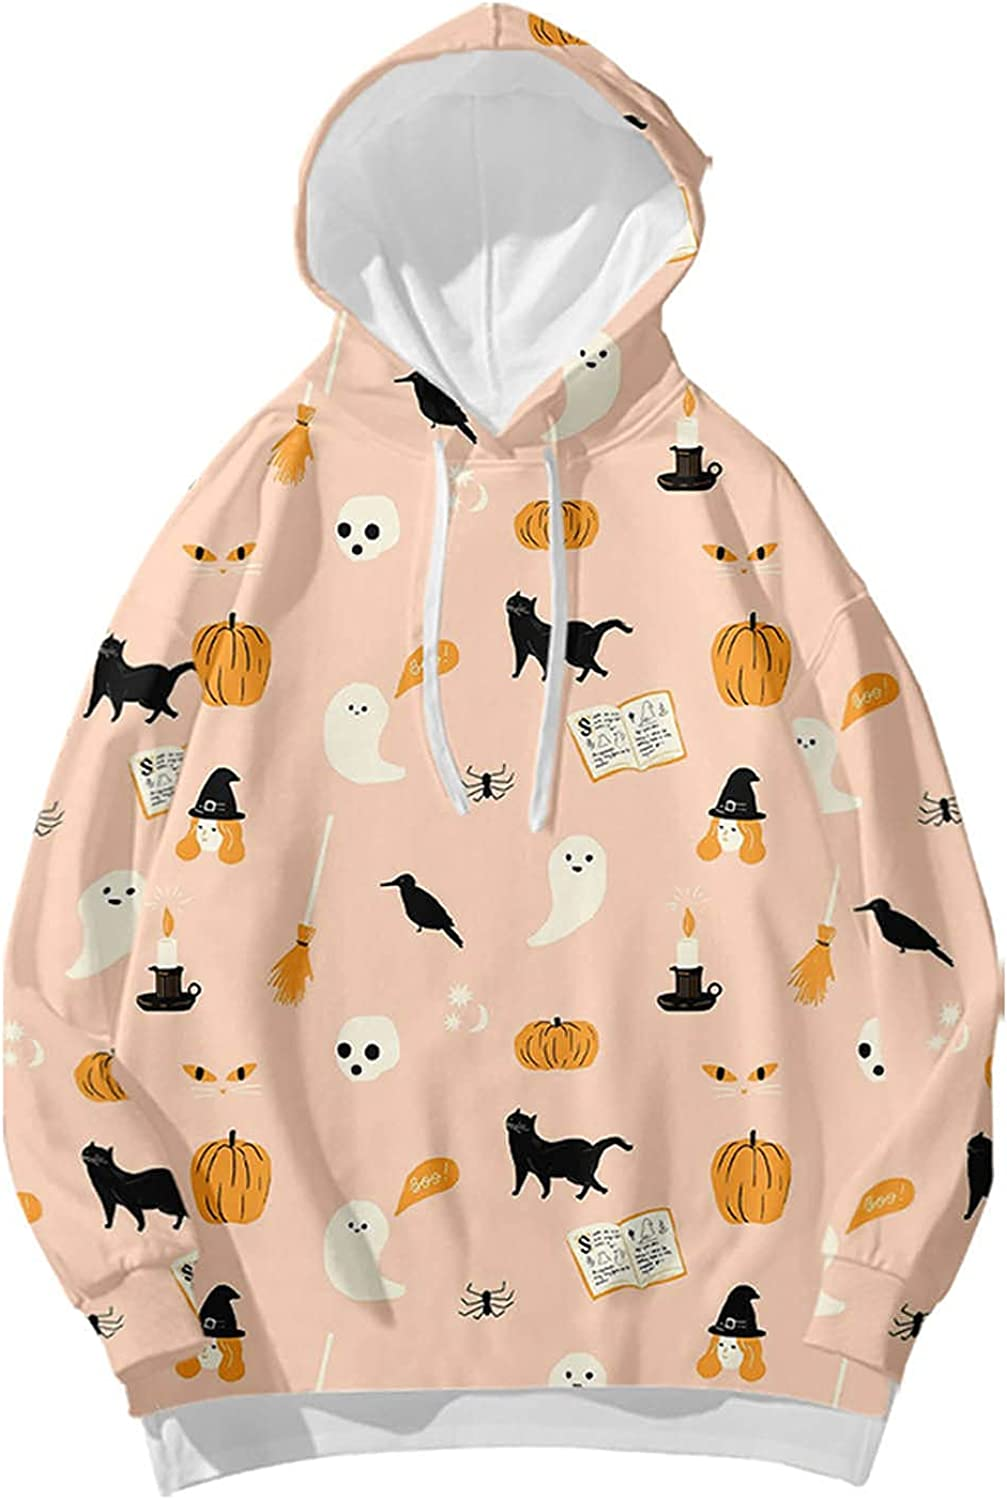 GXLONG Hoodies Max 58% OFF for Women Pullover Halloween Horror Print Pumpkin Limited price